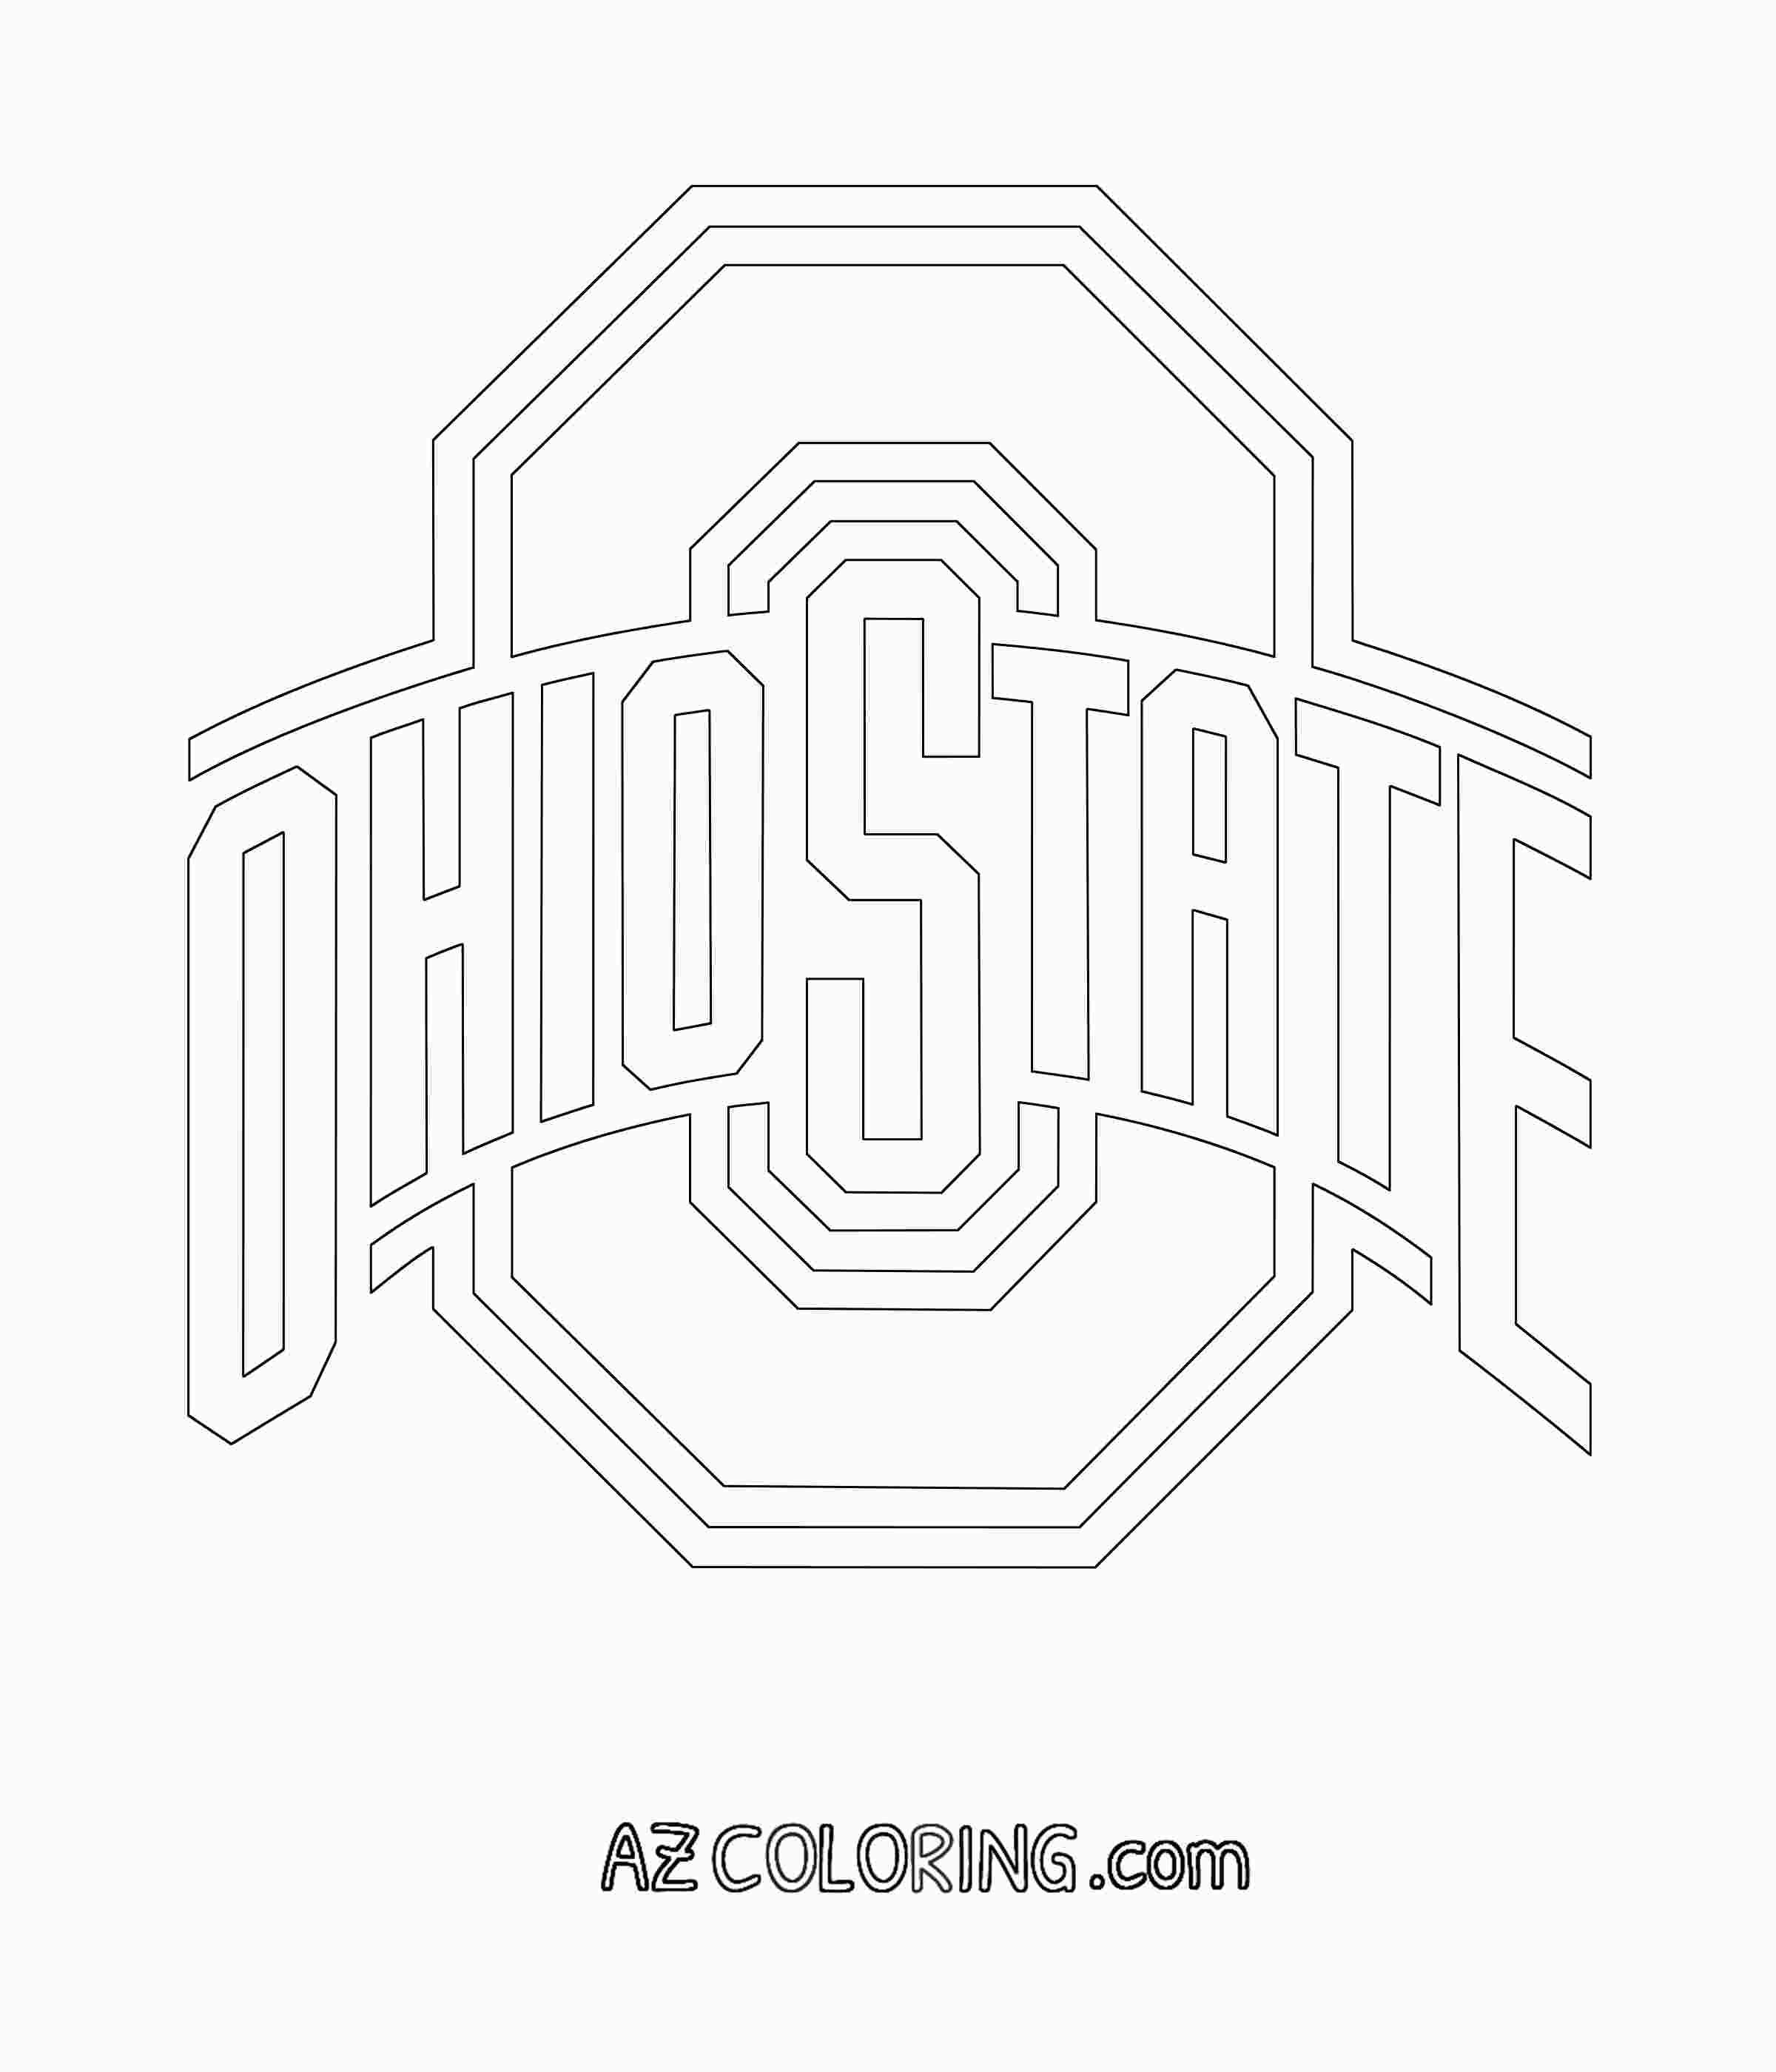 Ohio State Coloring Pages Ohio State Crafts Ohio State Colors